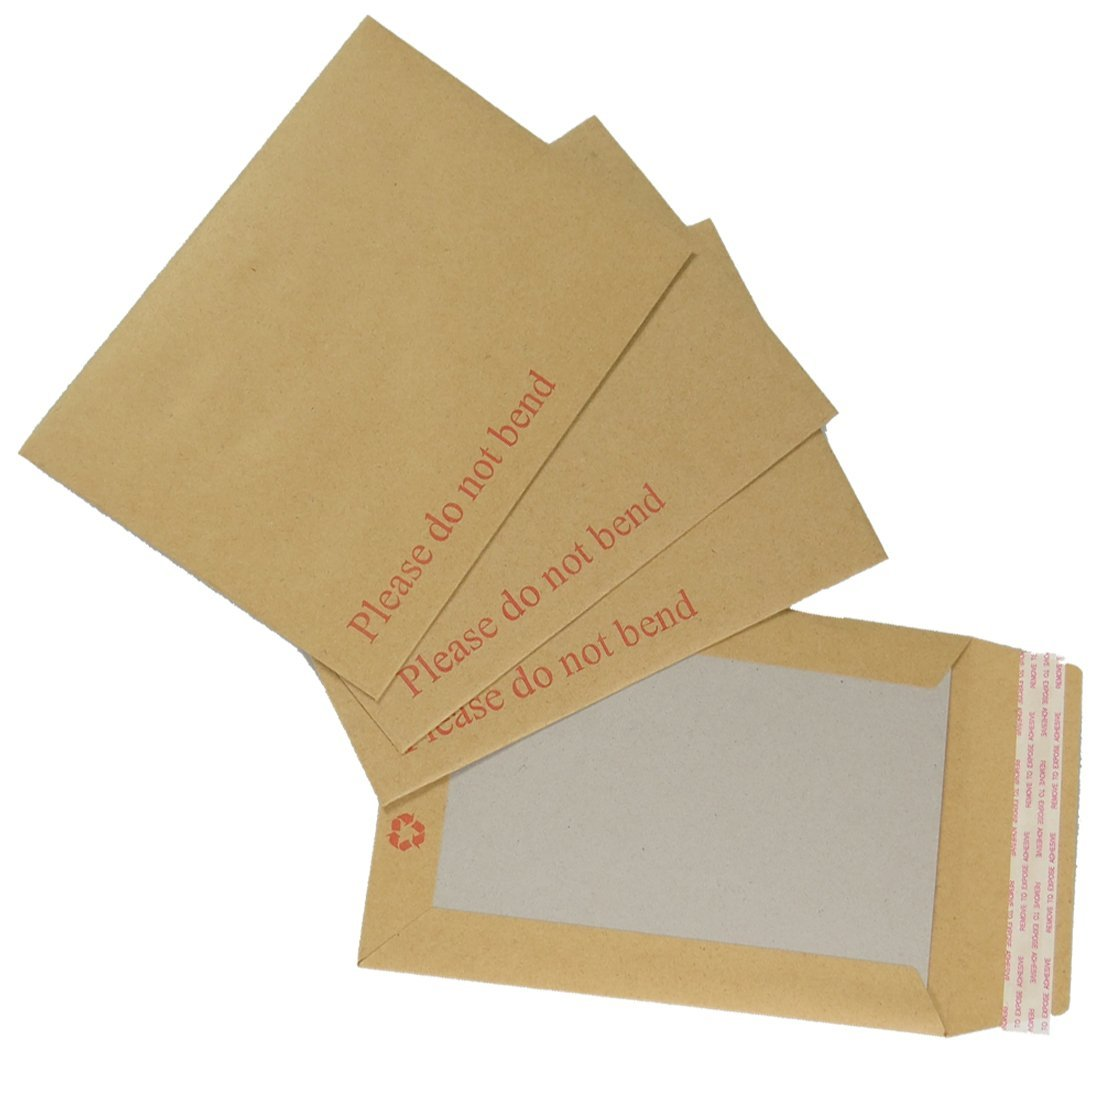 Triplast 229 x 162 mm A5 C5 Manilla Hard Board Backed Envelopes (Pack of 500)